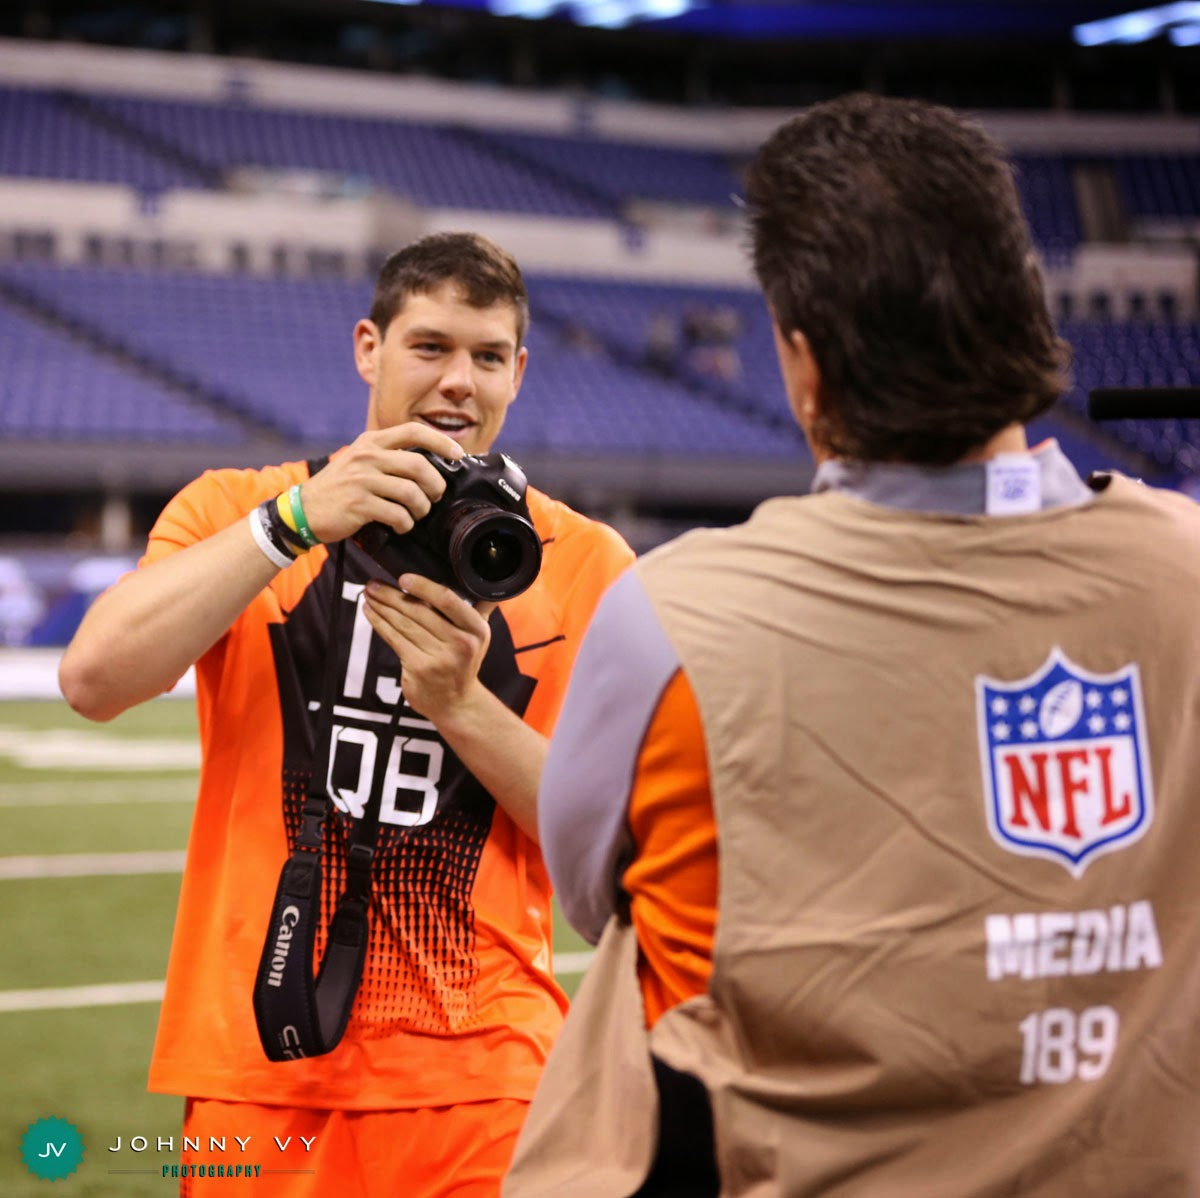 Nfl Combine Bench Record: Johnny Vy Photography Blog: March 2015